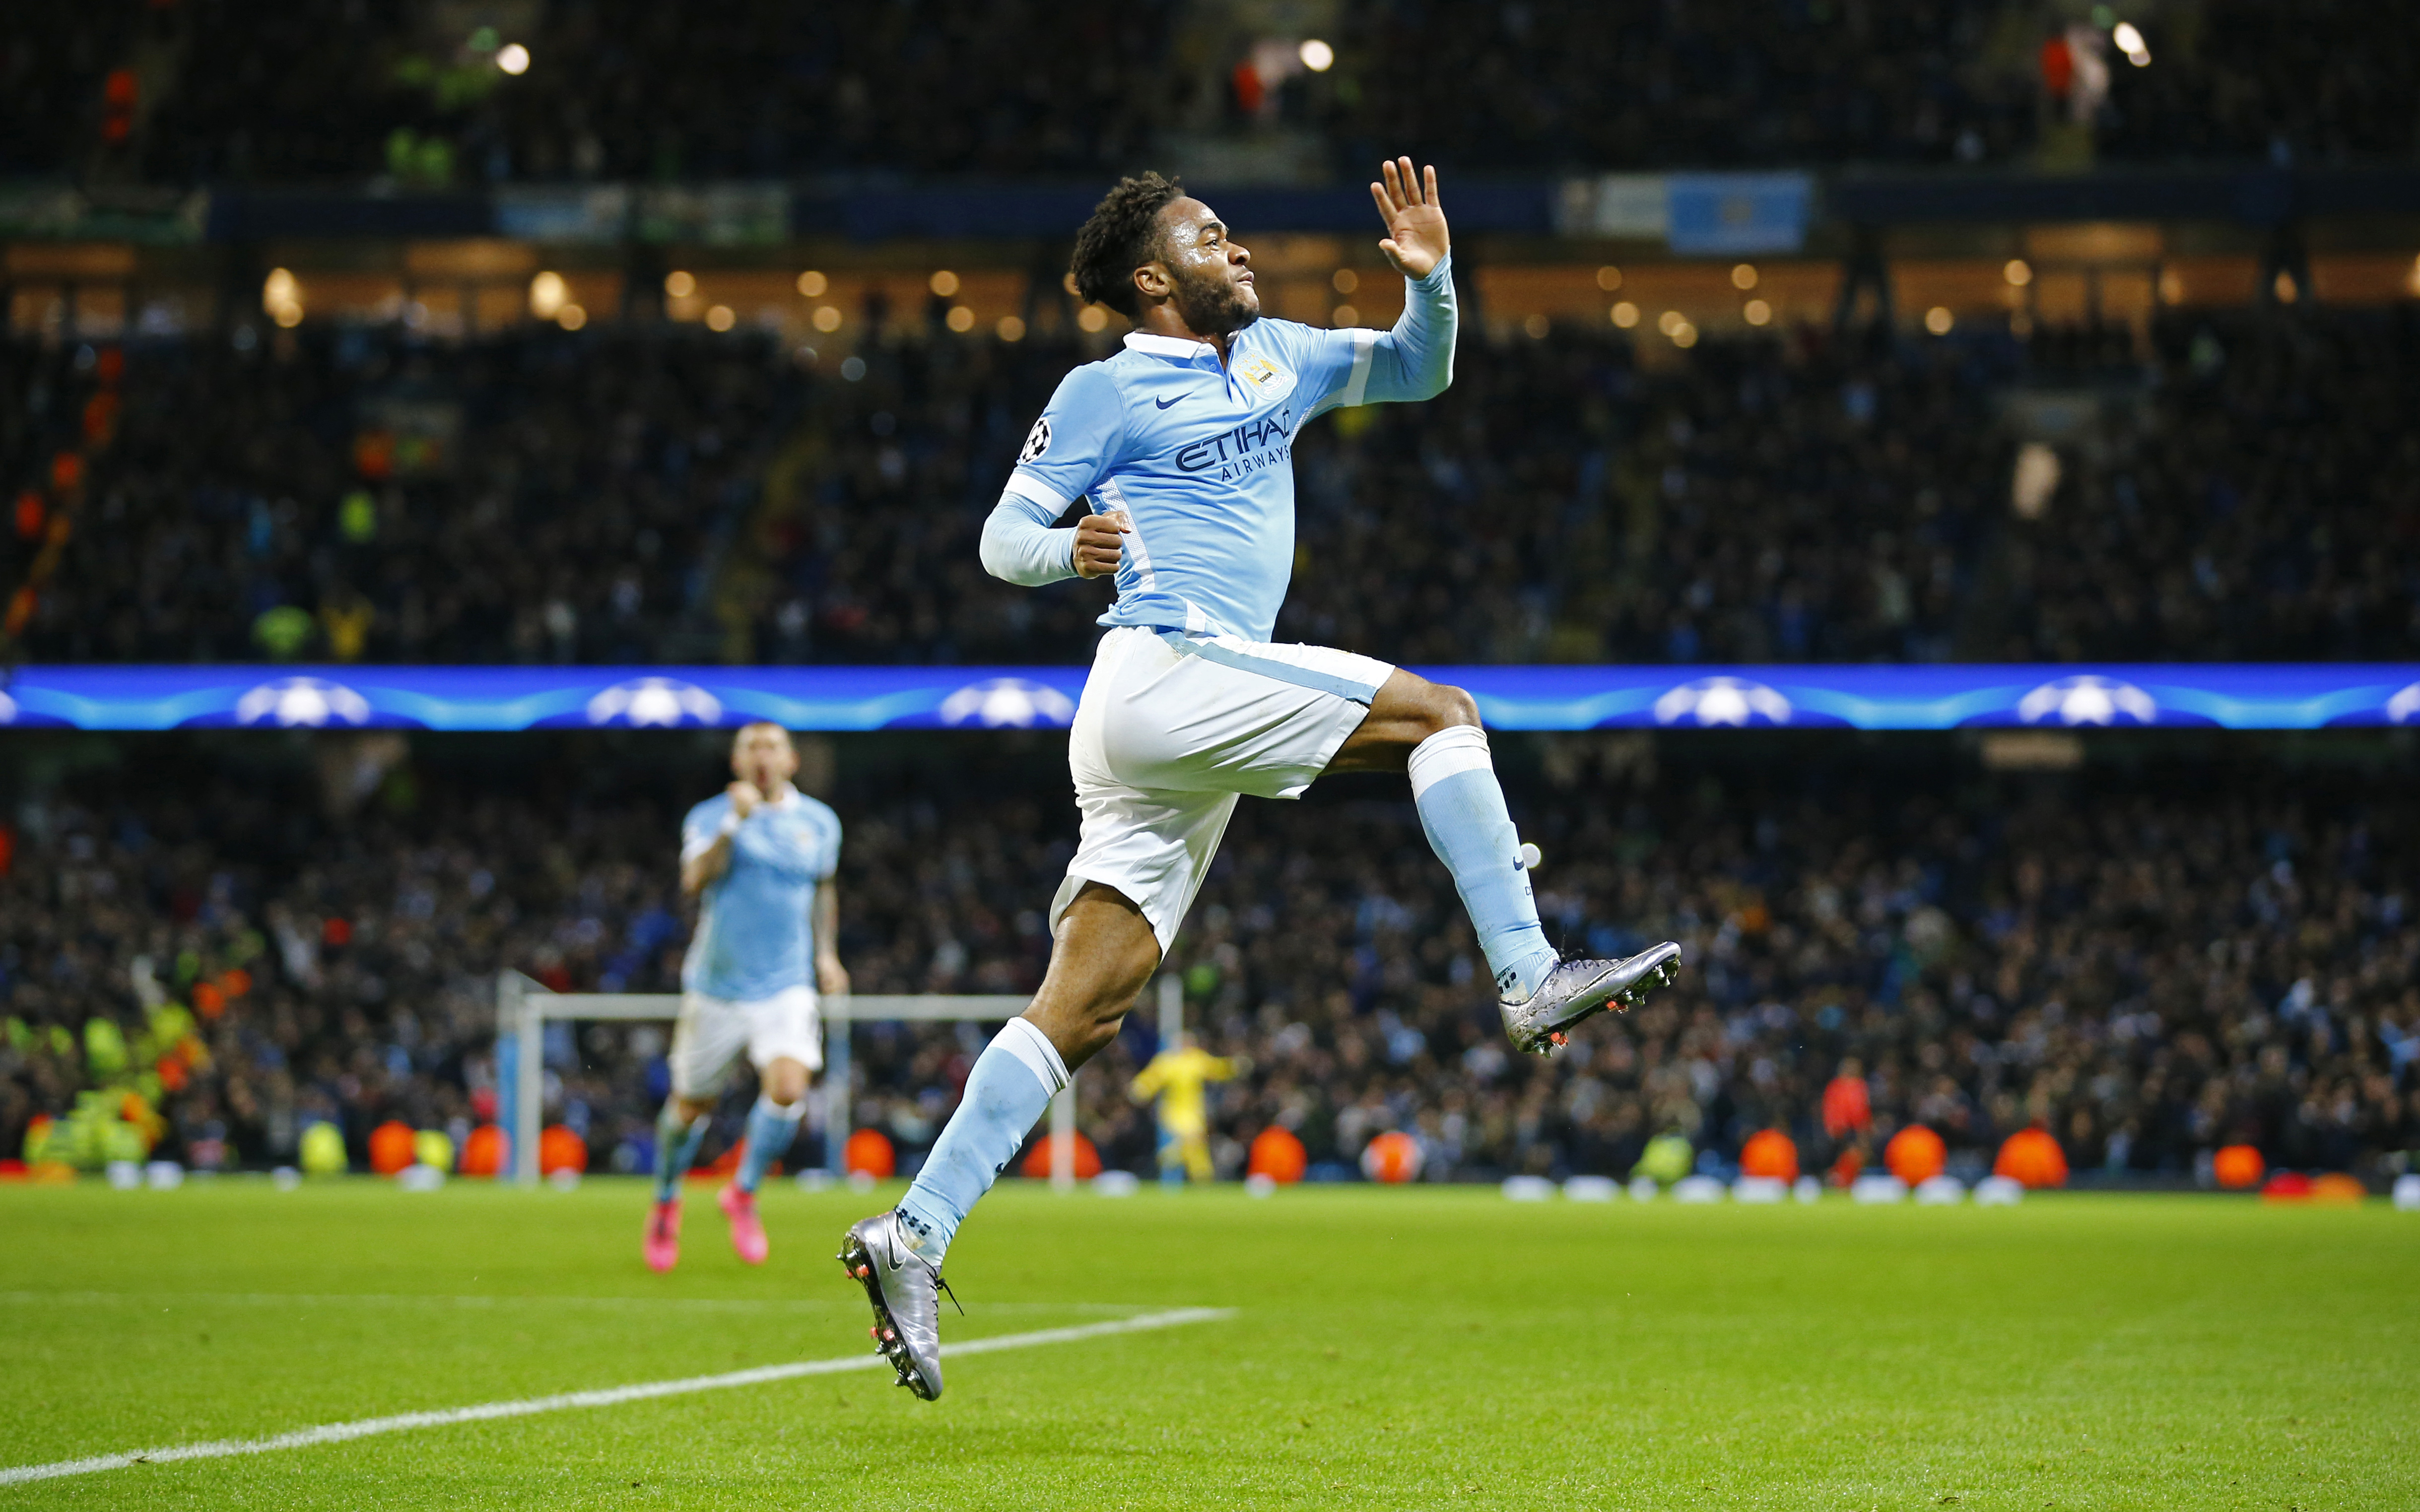 Raheem Sterling celebrates after scoring the third goal for Manchester City against Borussia Monchengladbach on Tuesday, December 8, 2015. Photo: Reuters